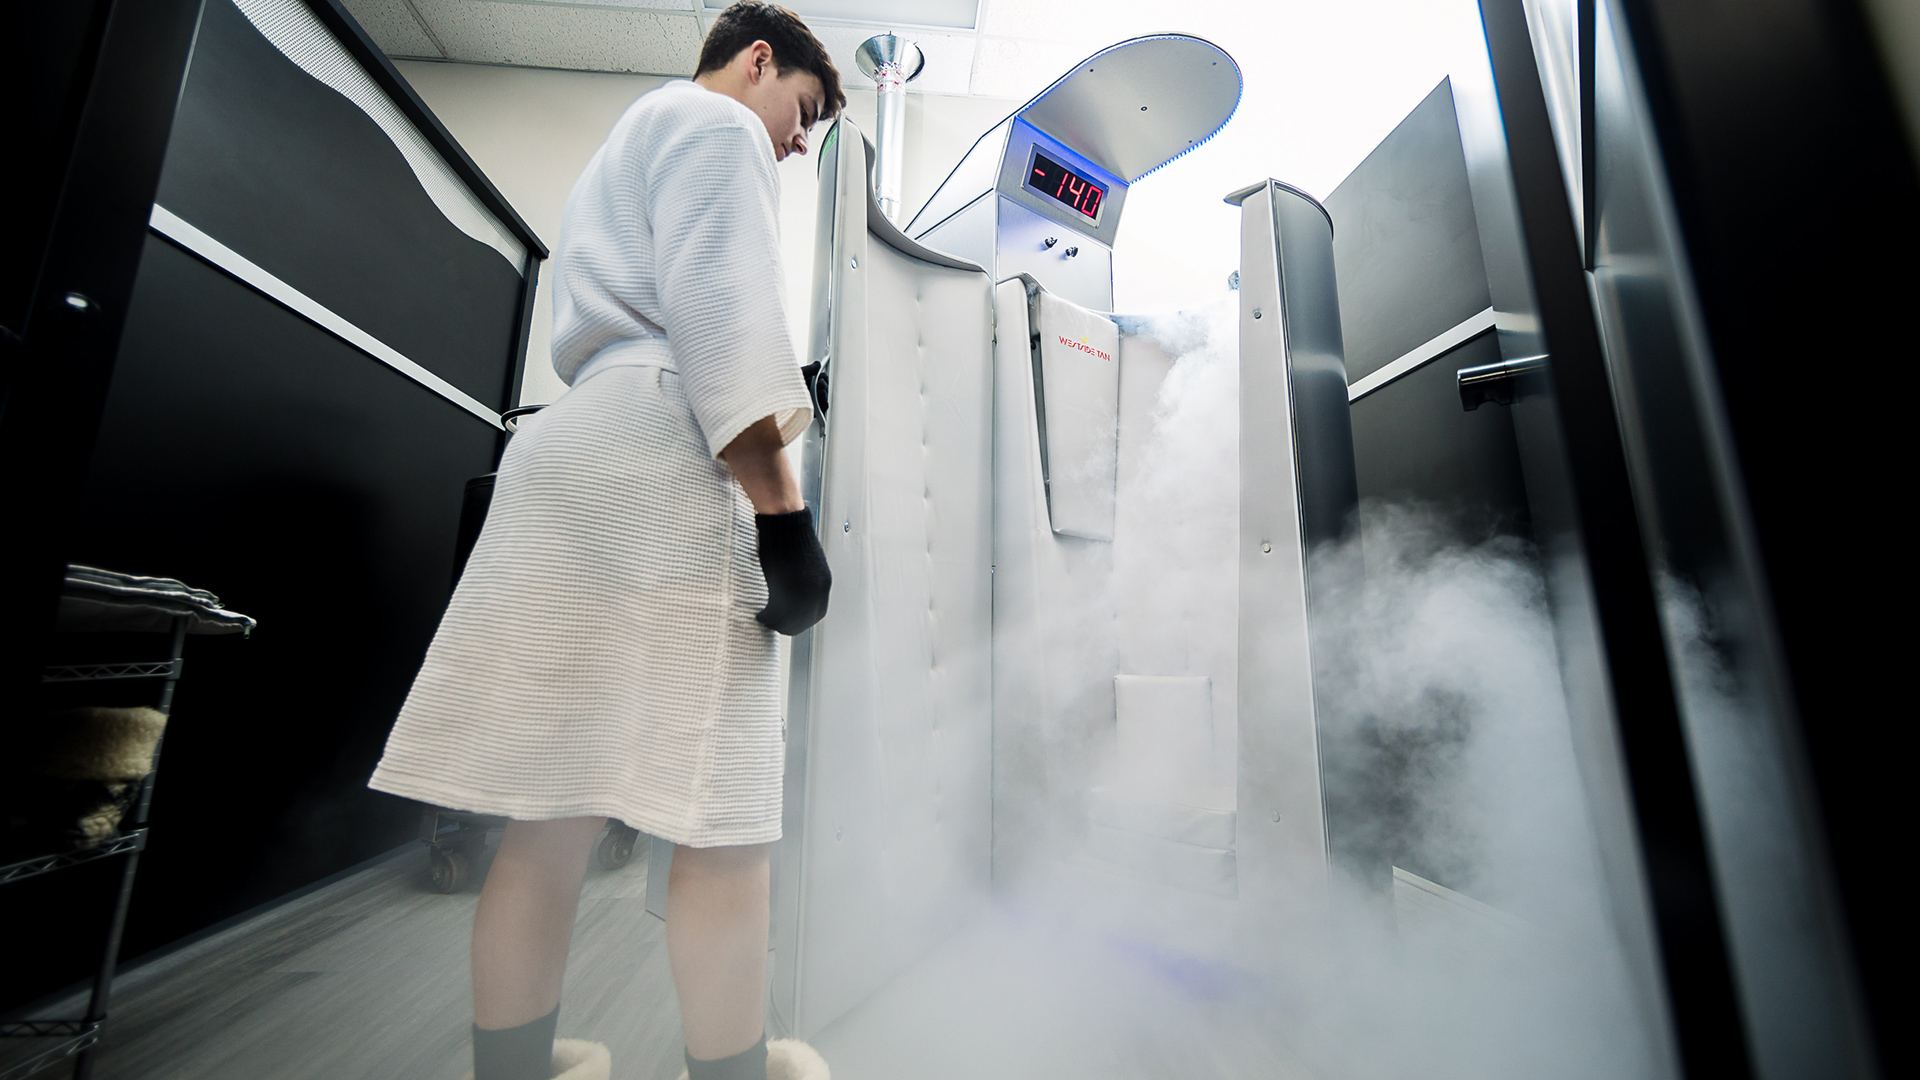 guest standing next to open cryotherapy chamber as nitrogen is being released